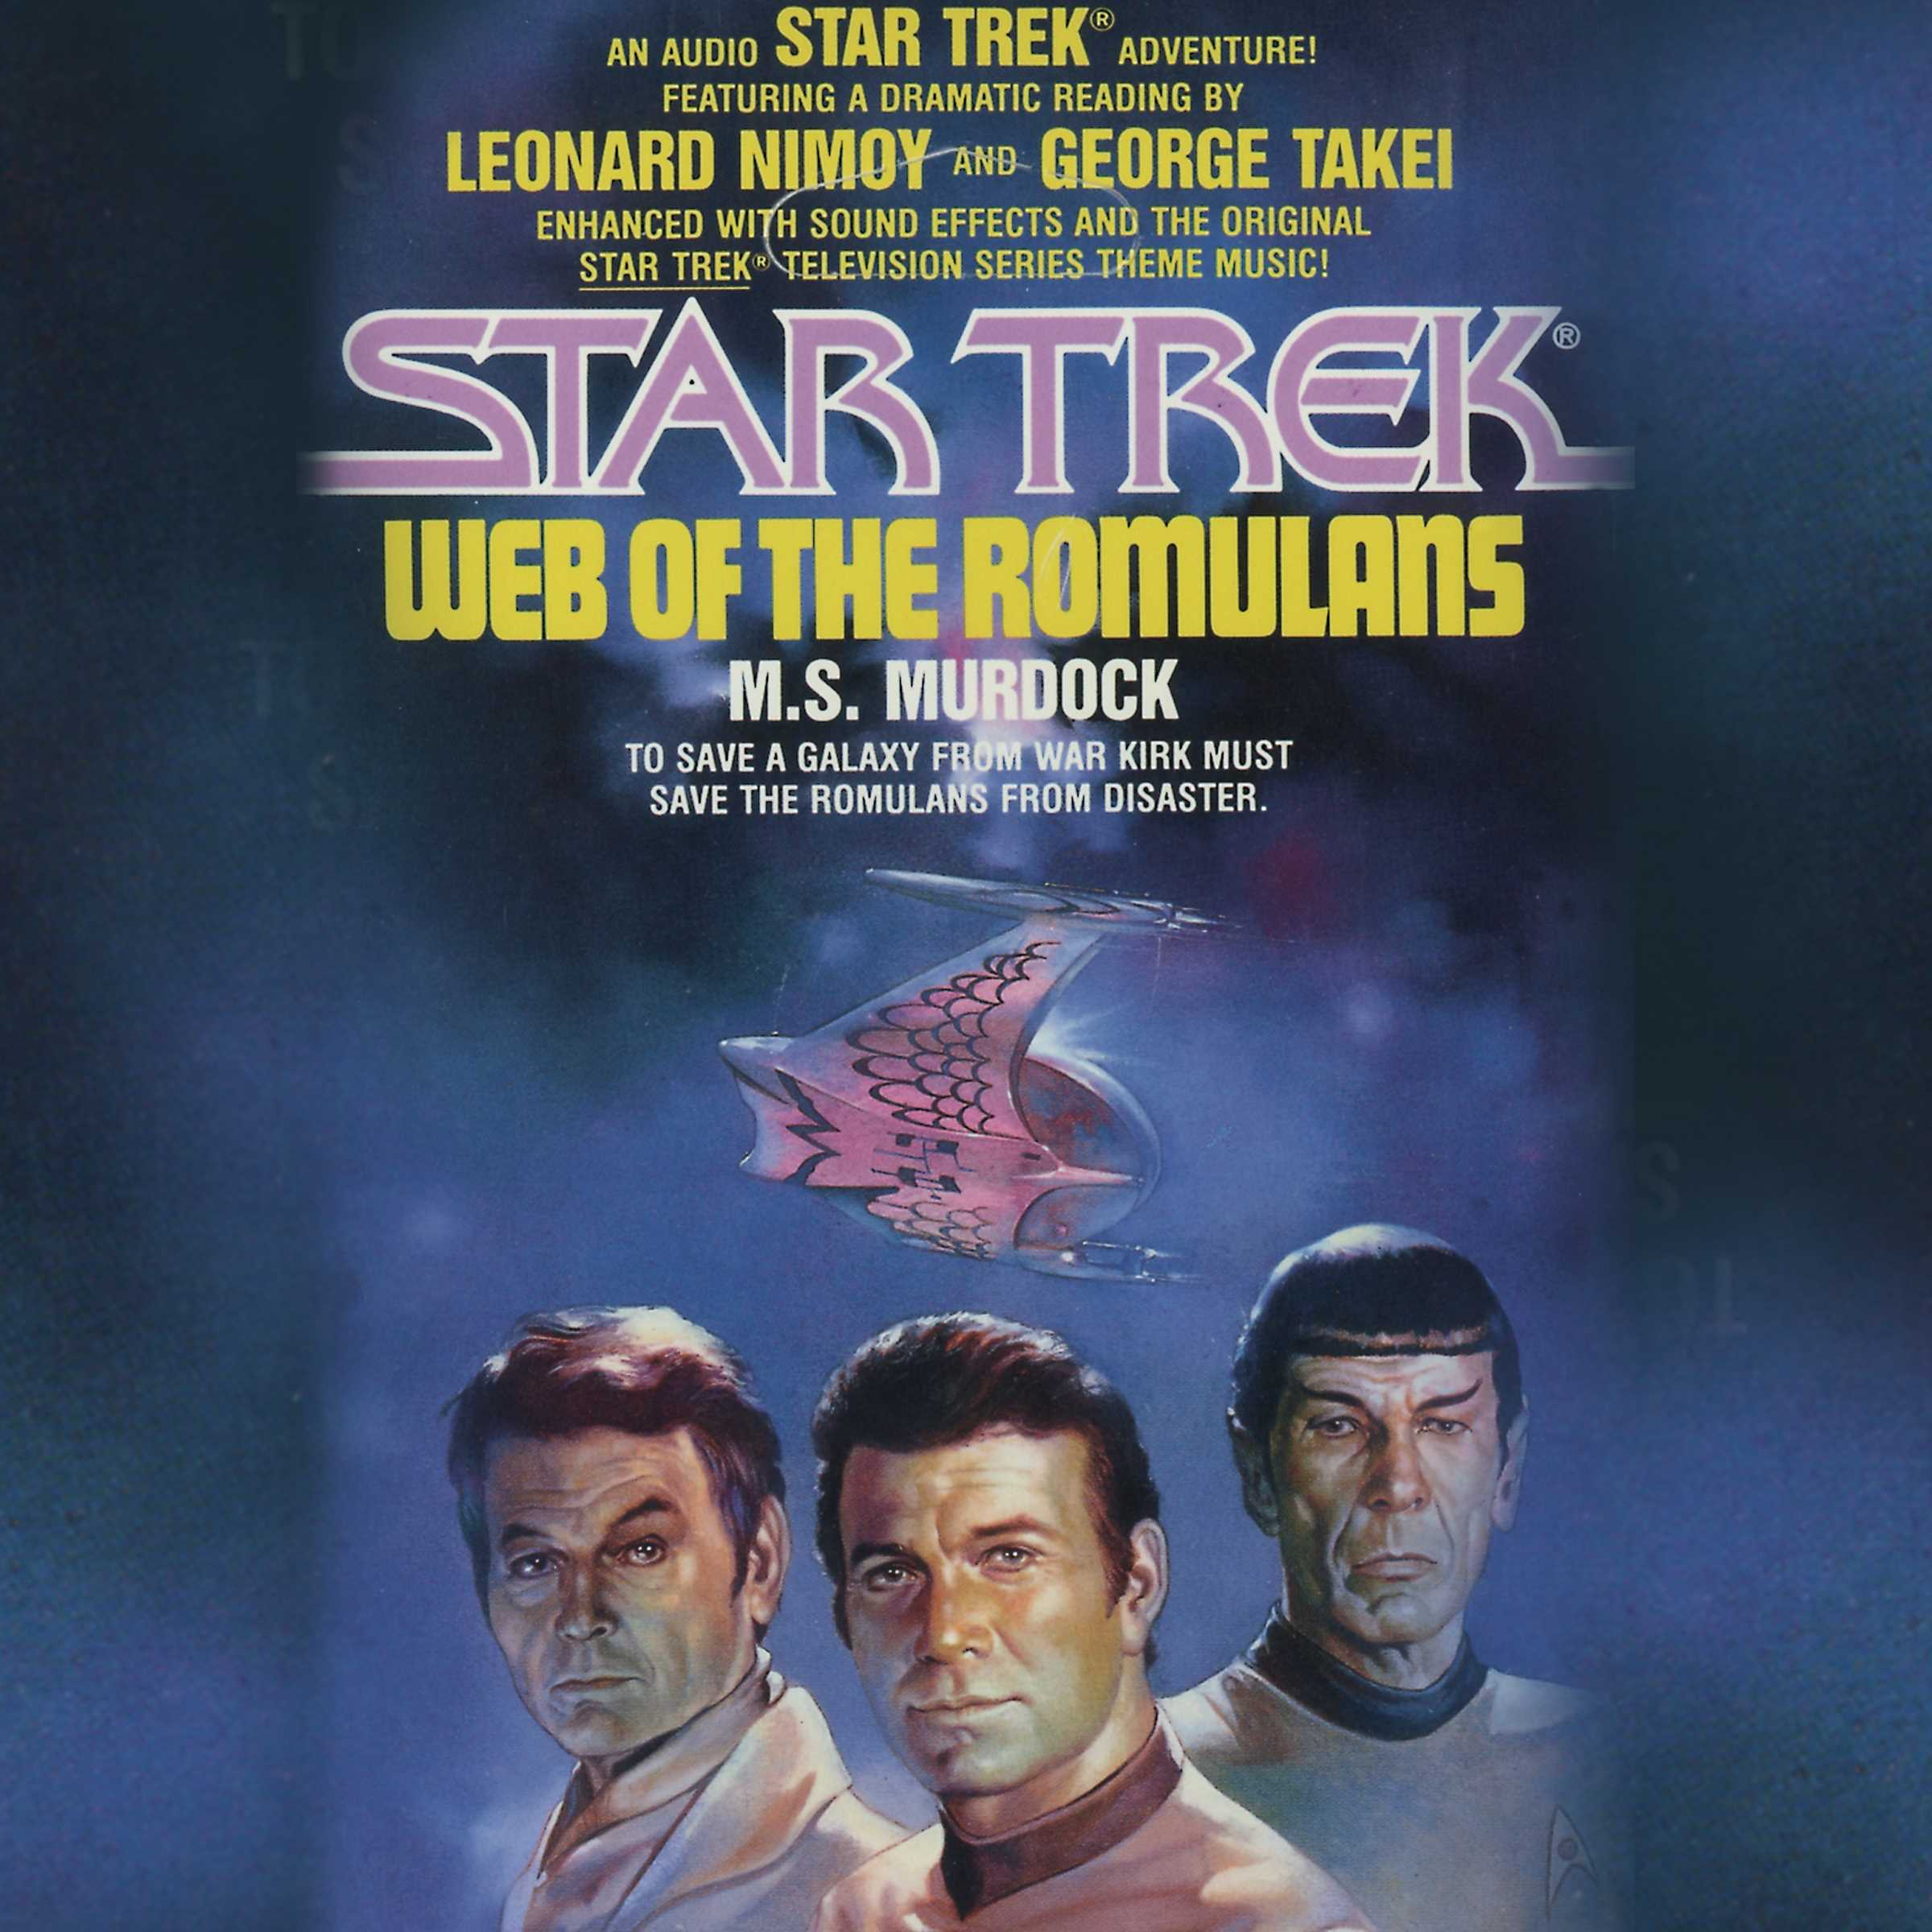 Star trek web of the romulans 9780743545402 hr